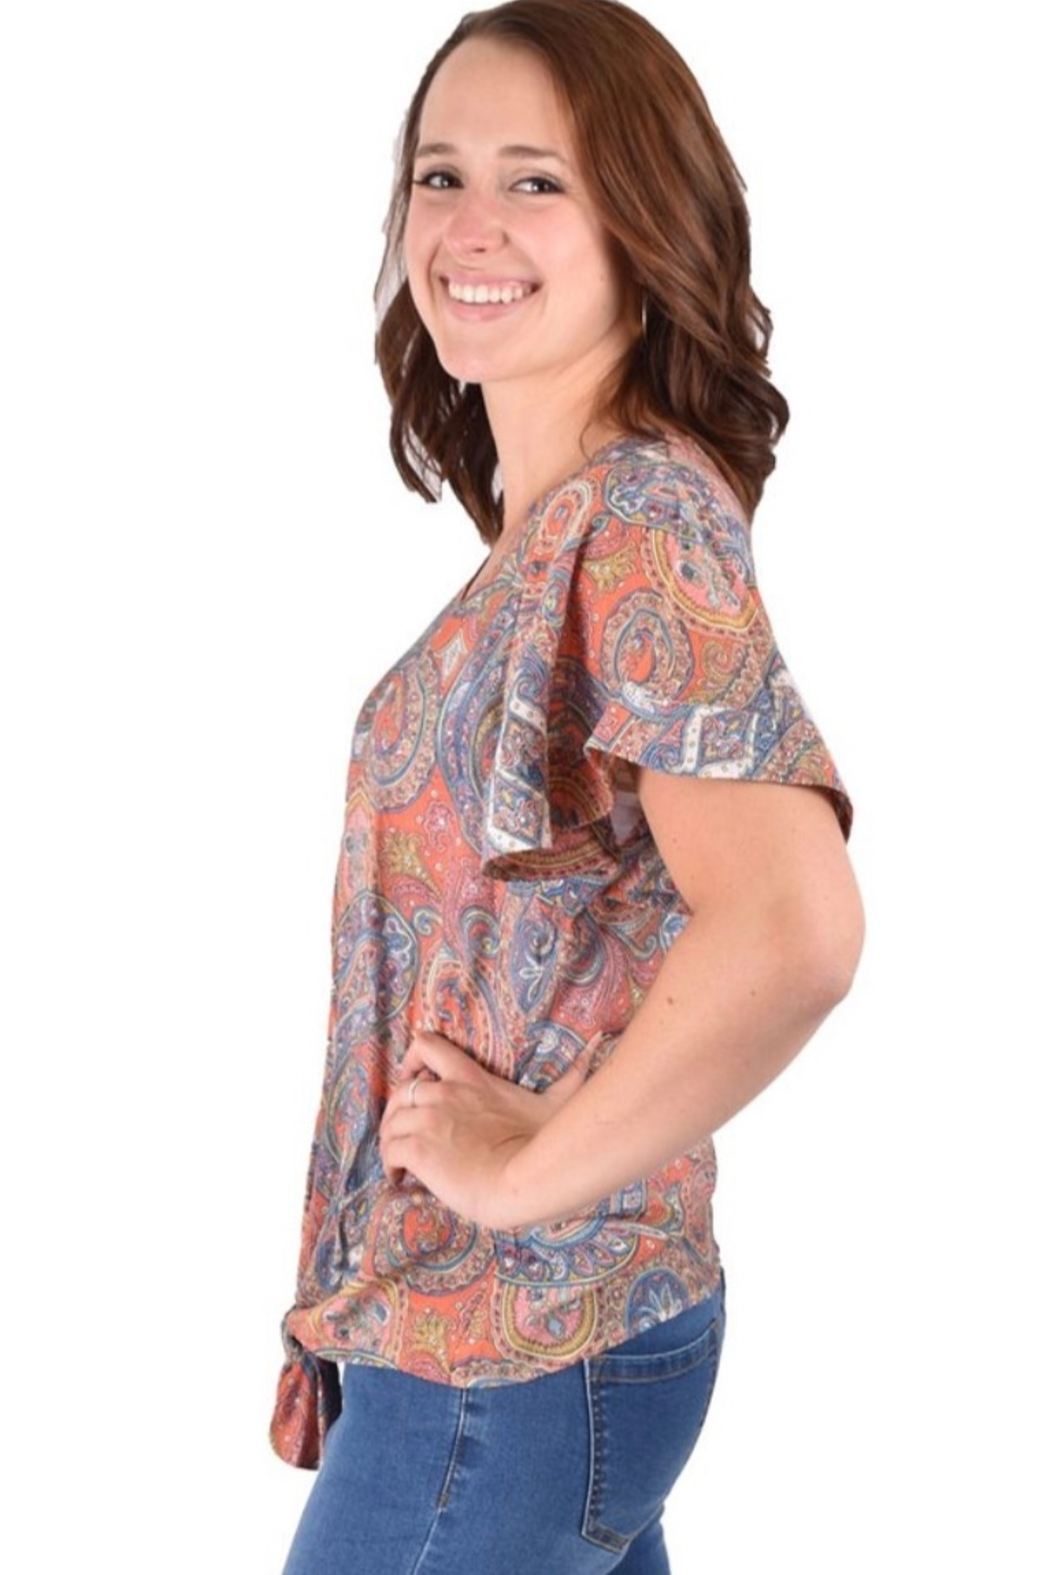 Ethyl Beaumont Multi-colored paisley top with tie knot front. - Front Full Image